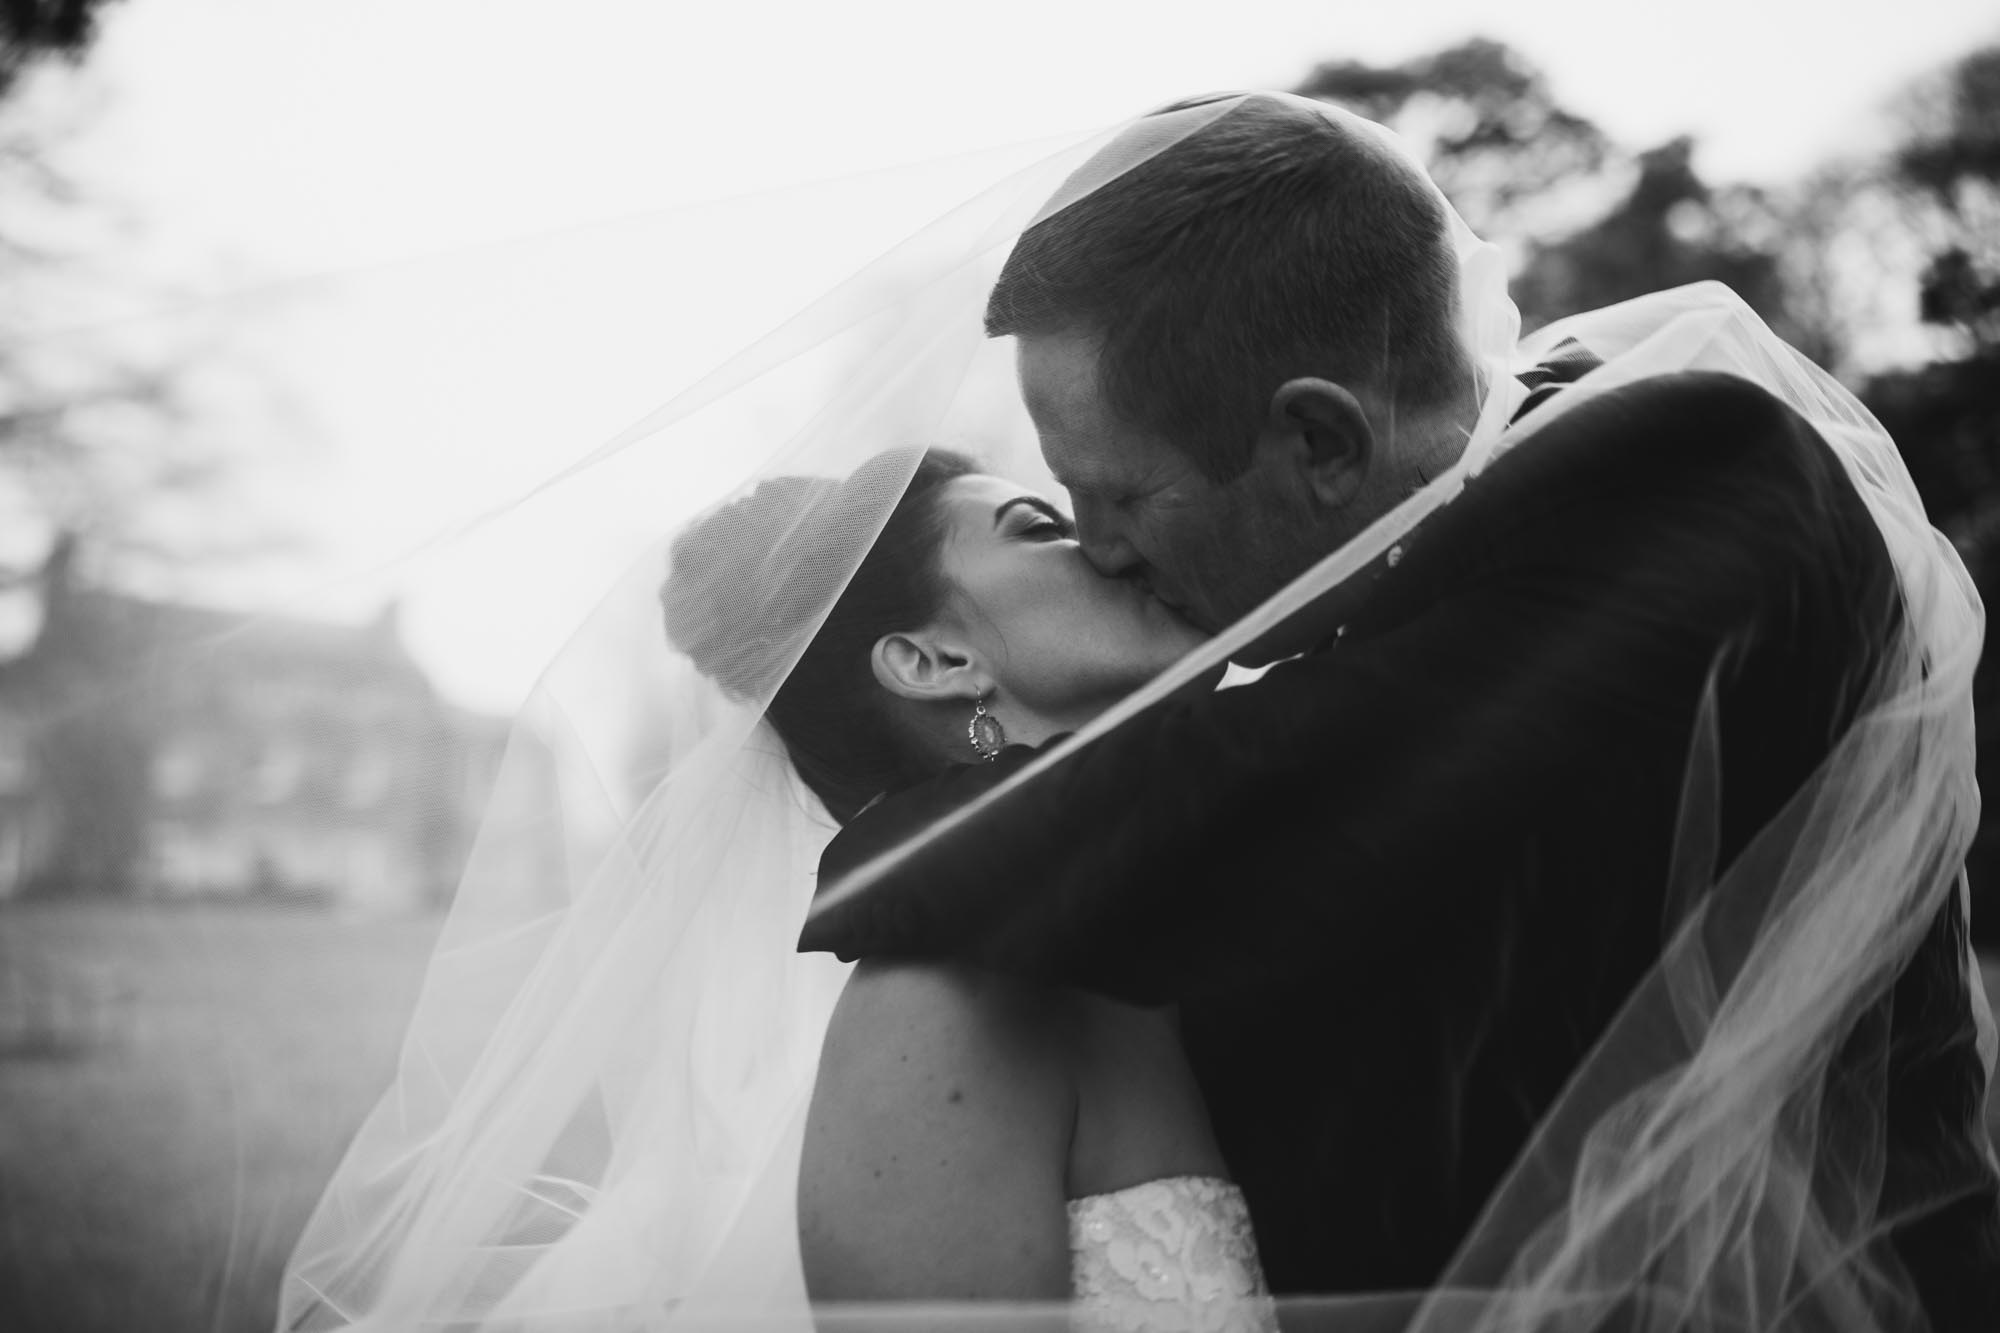 003 south wales wedding Photographers-8796.jpg